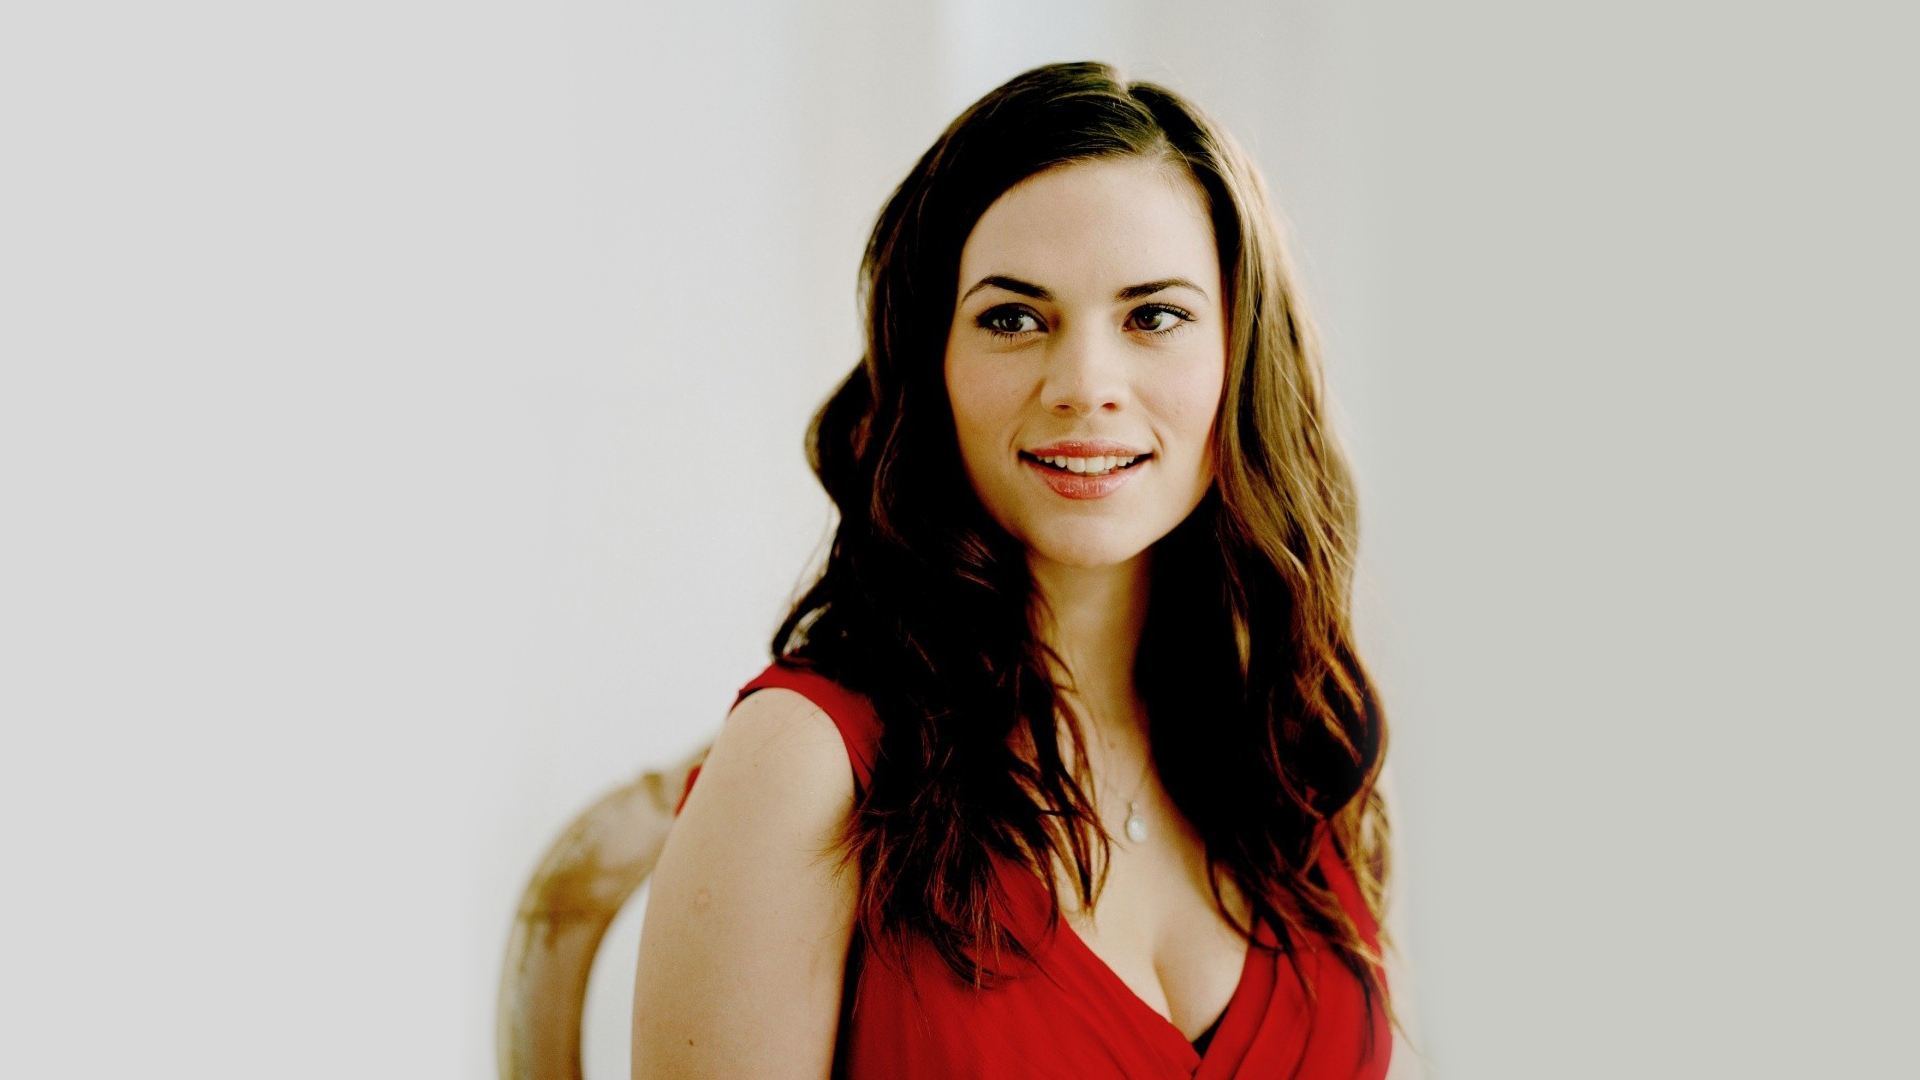 hayley atwell pictures 27117